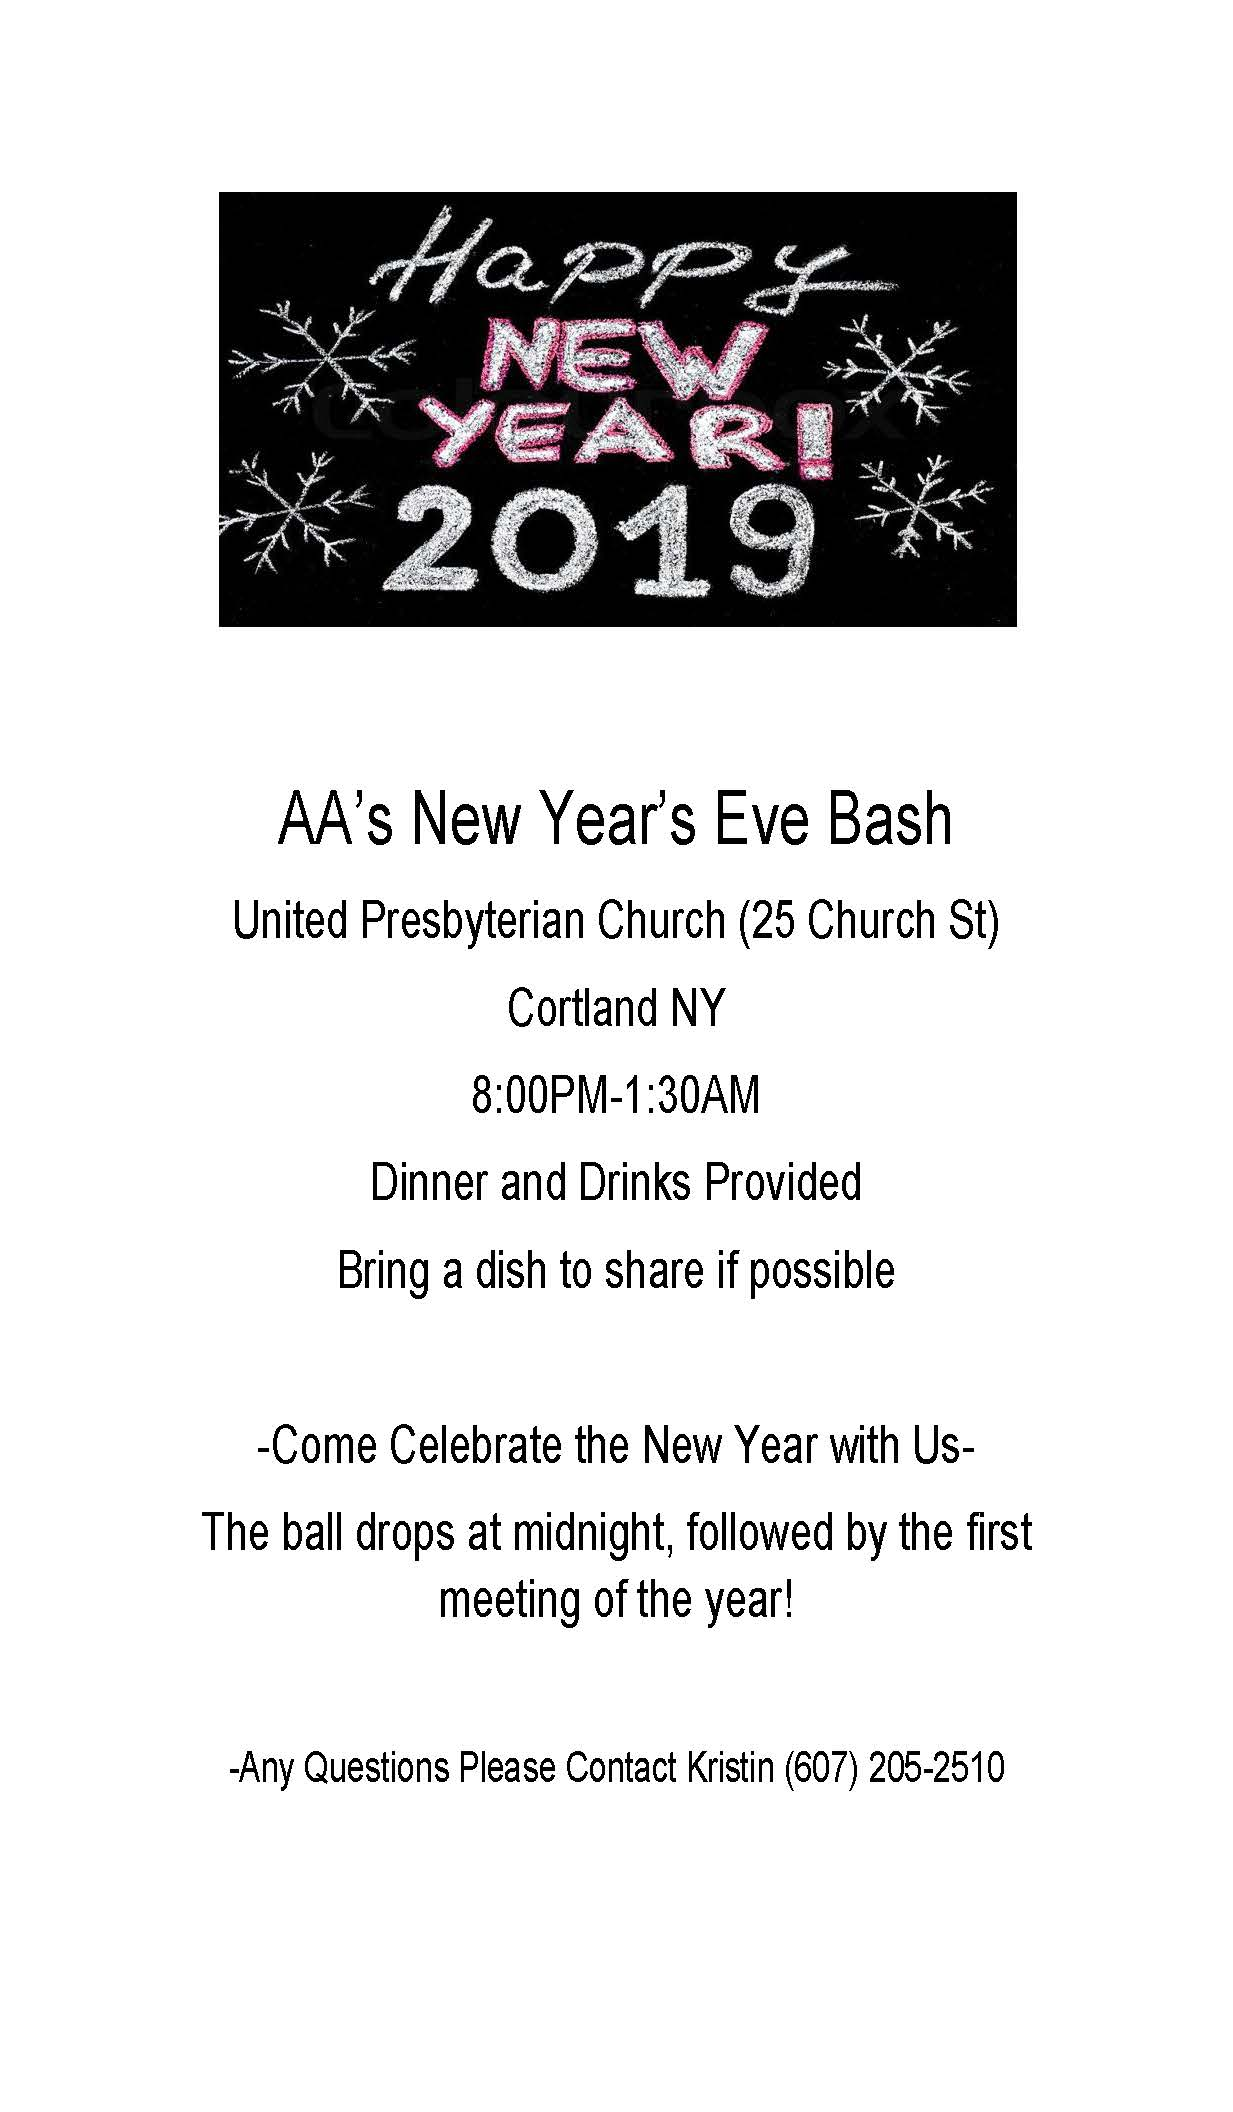 new years eve flyer.jpg